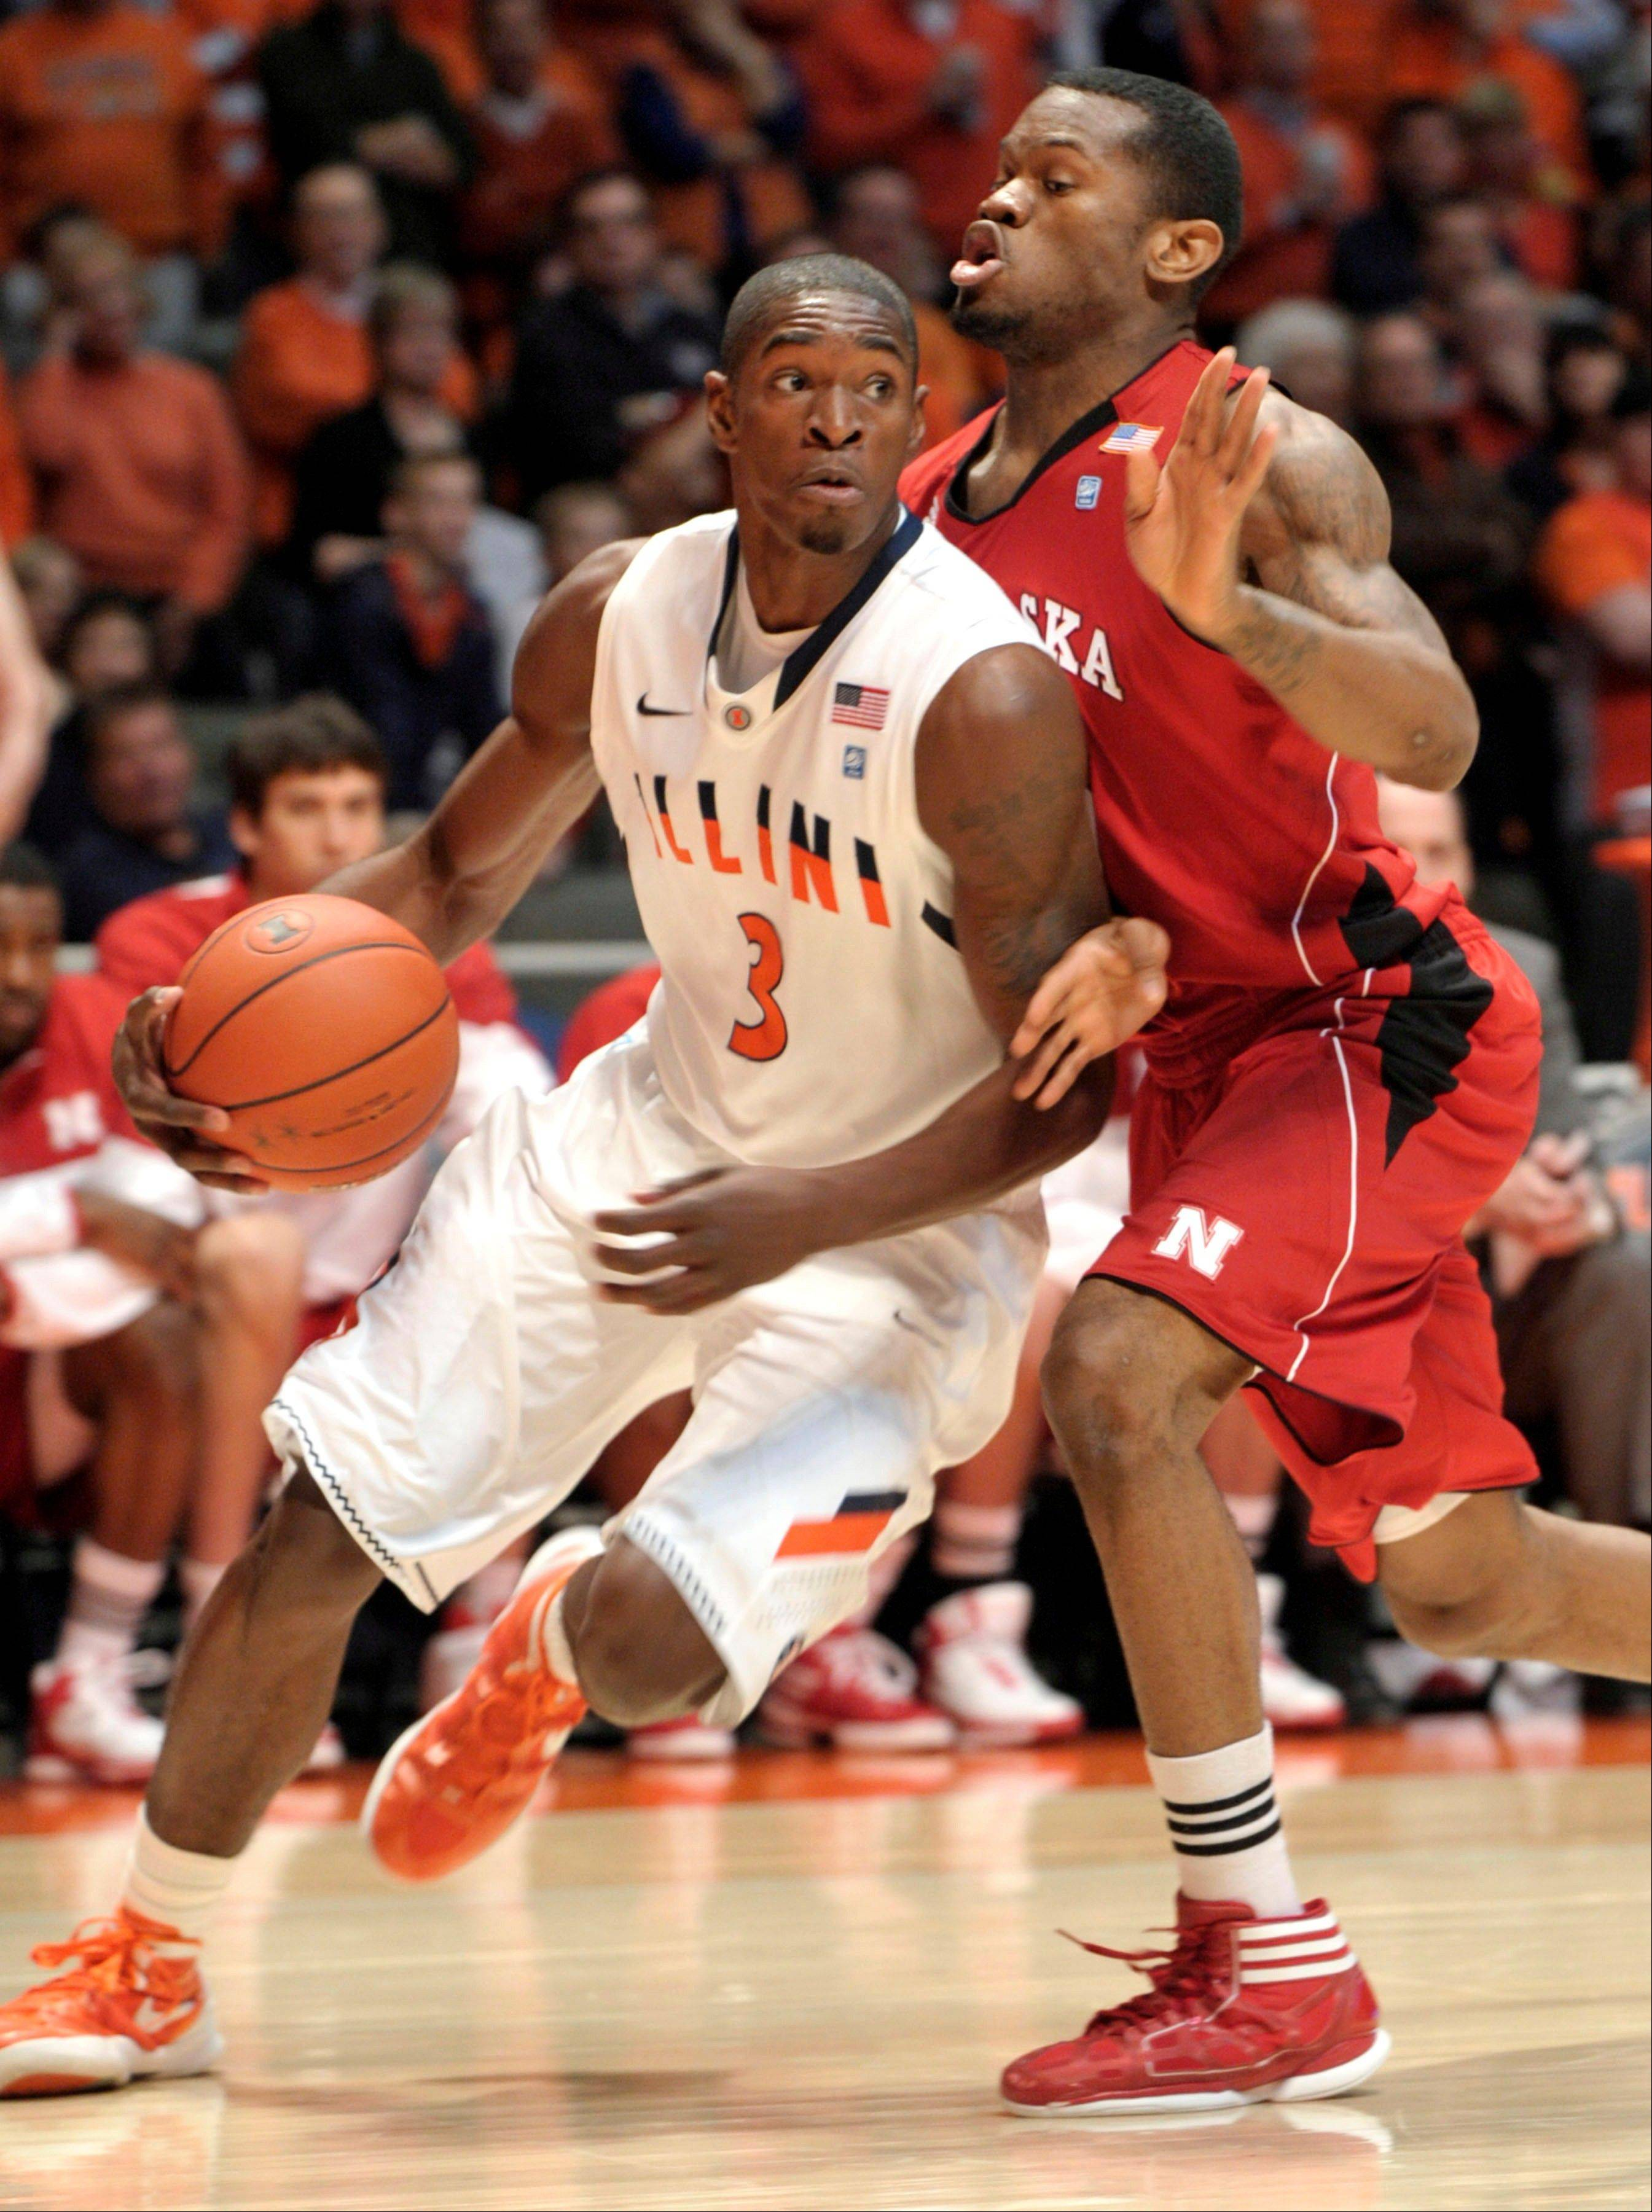 Illinois guard Brandon Paul enters his senior season with a new head coach and several new teammates expected to play bigger roles. The former Warren star is one of four captains on the Illini.